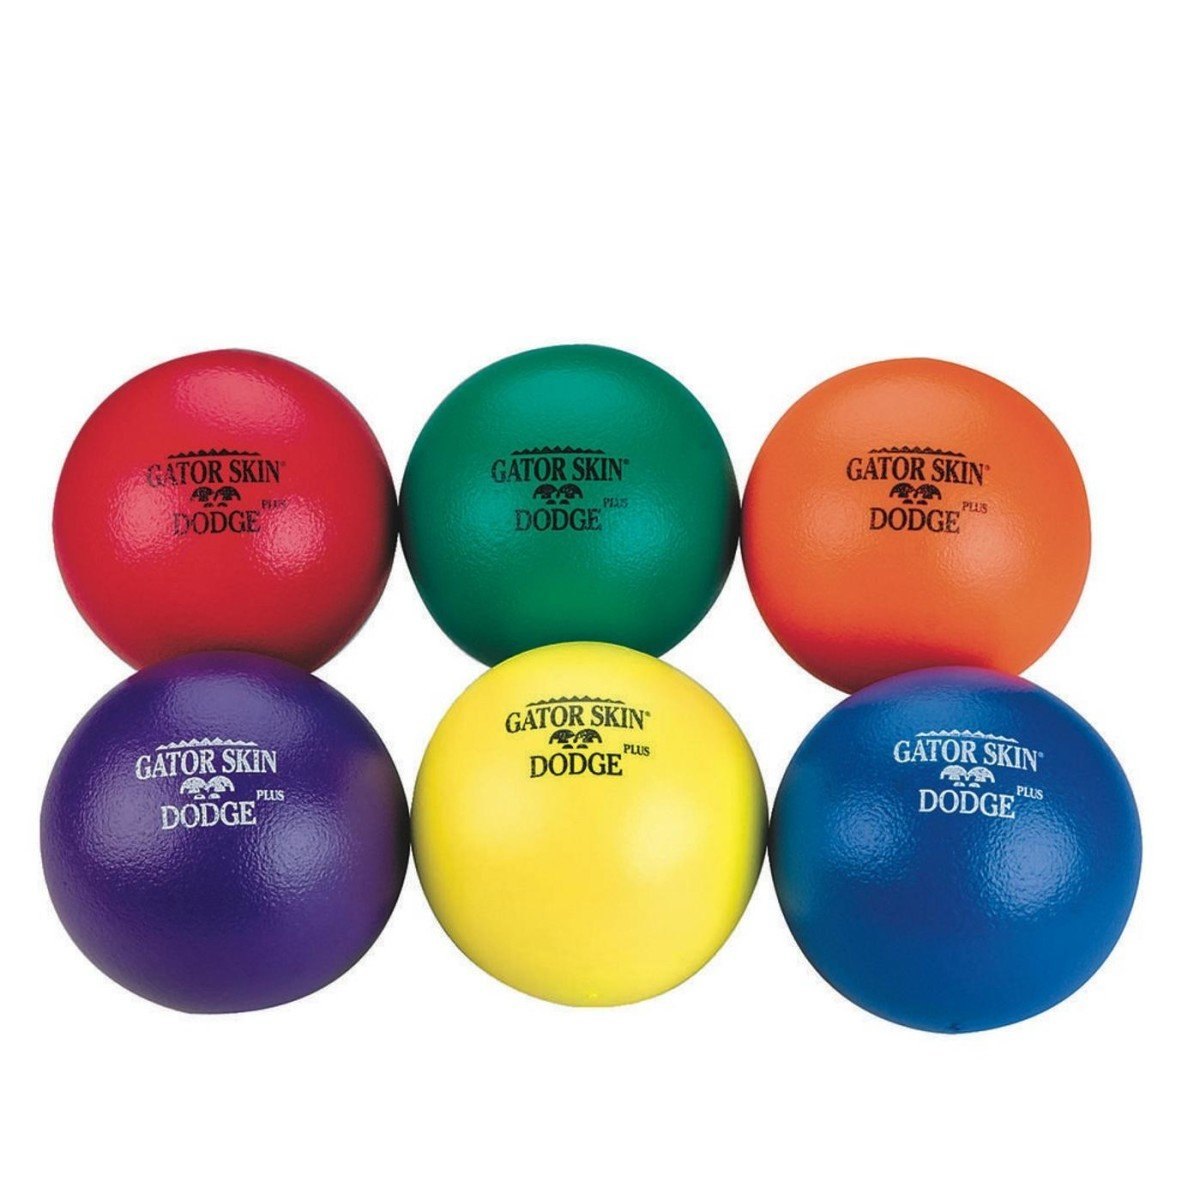 S&S Worldwide UA904-6C Gator Skin Dodge Plus Middle School Dodgeball, Grade:1 to 5, (Pack of 6)